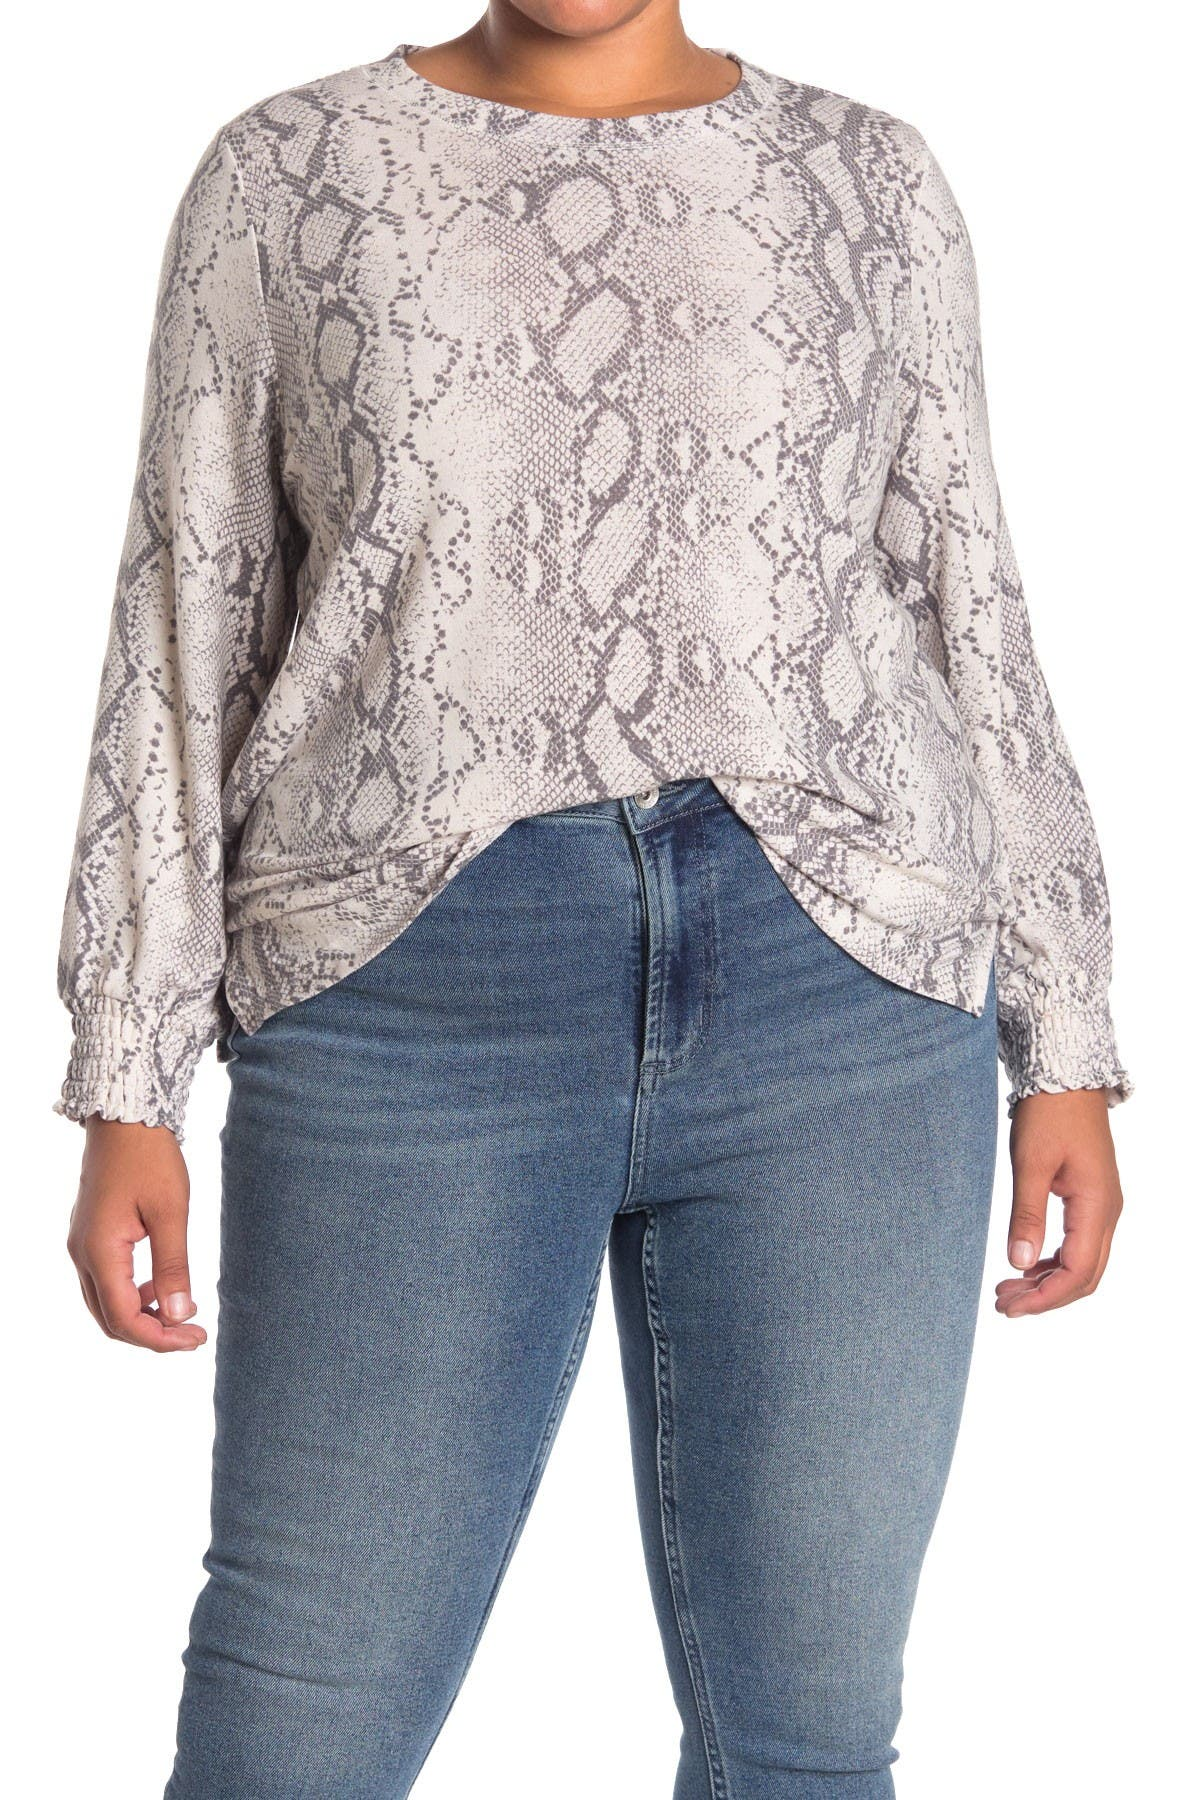 Image of Collective Concepts Snake Print Crew Neck Top